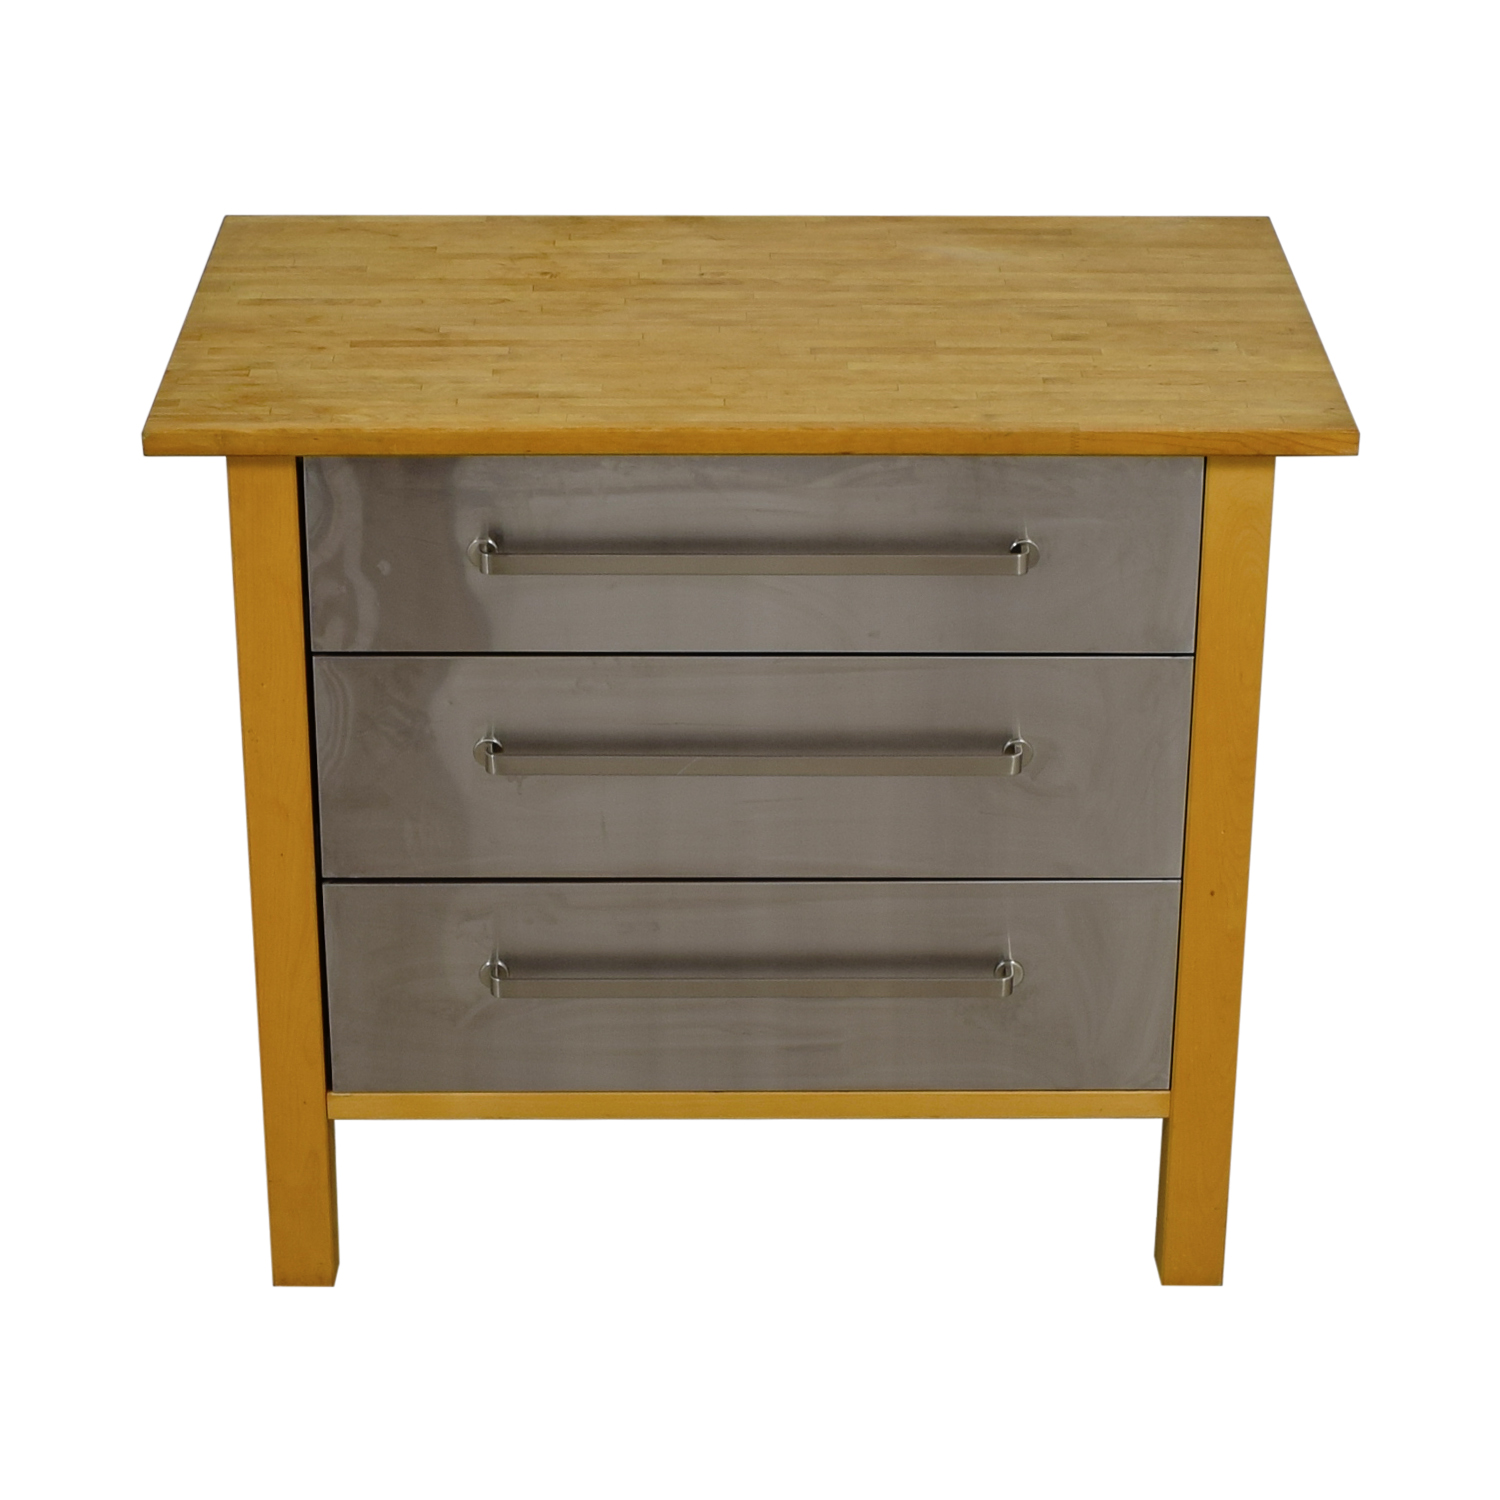 shop IKEA Varde Kitchen Butcher Block Island with Drawers IKEA